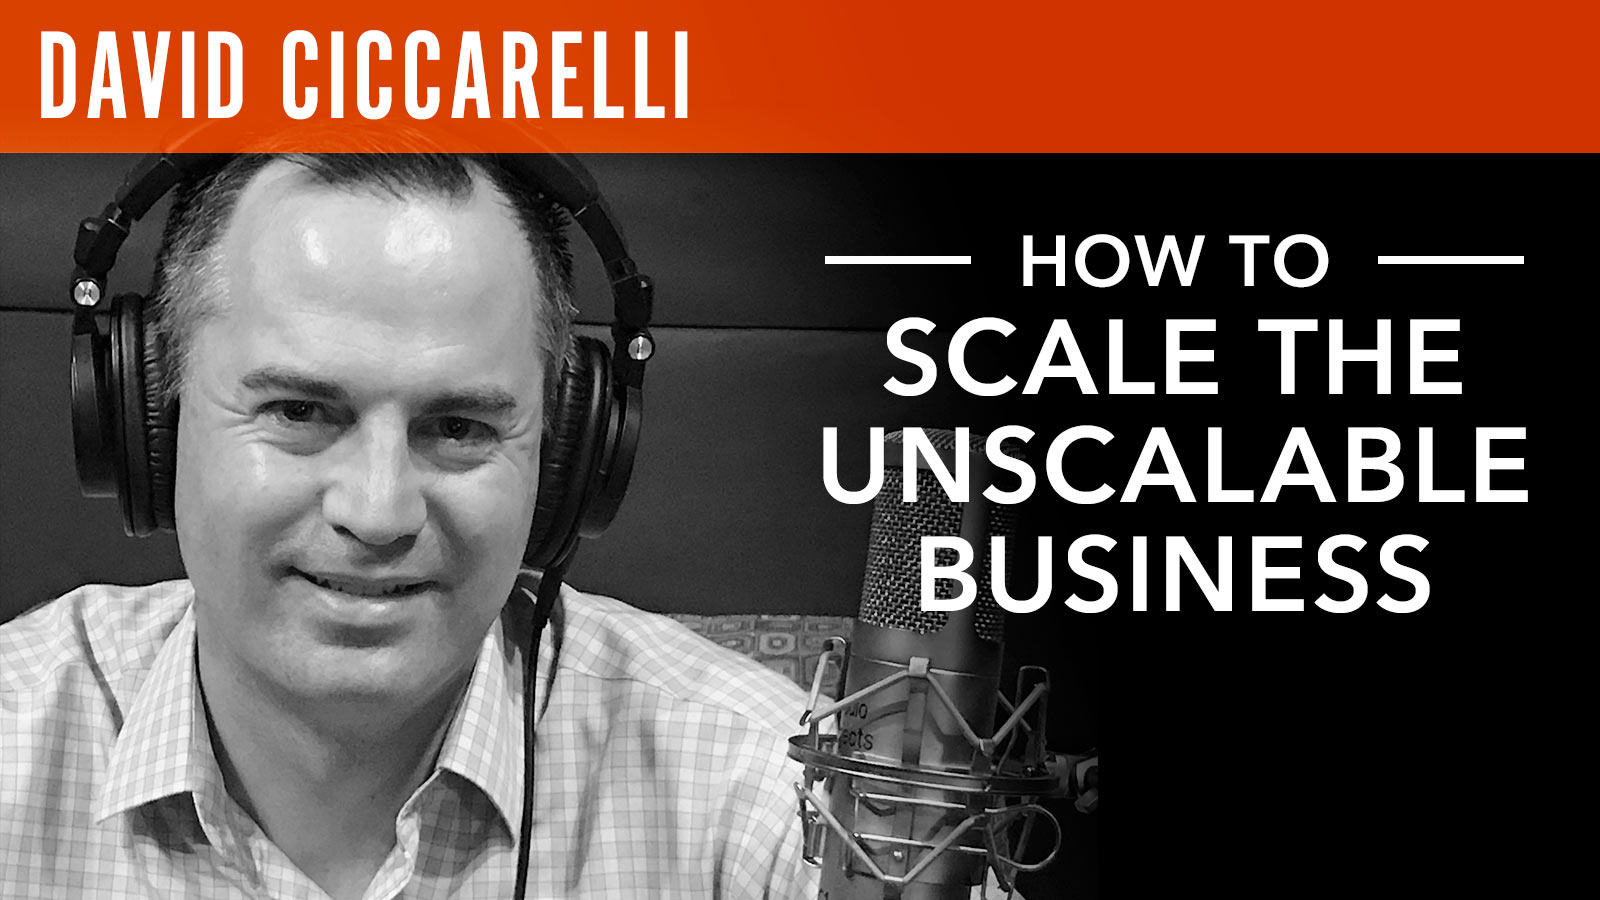 David Ciccarelli  How to Scale the Unscalable Business